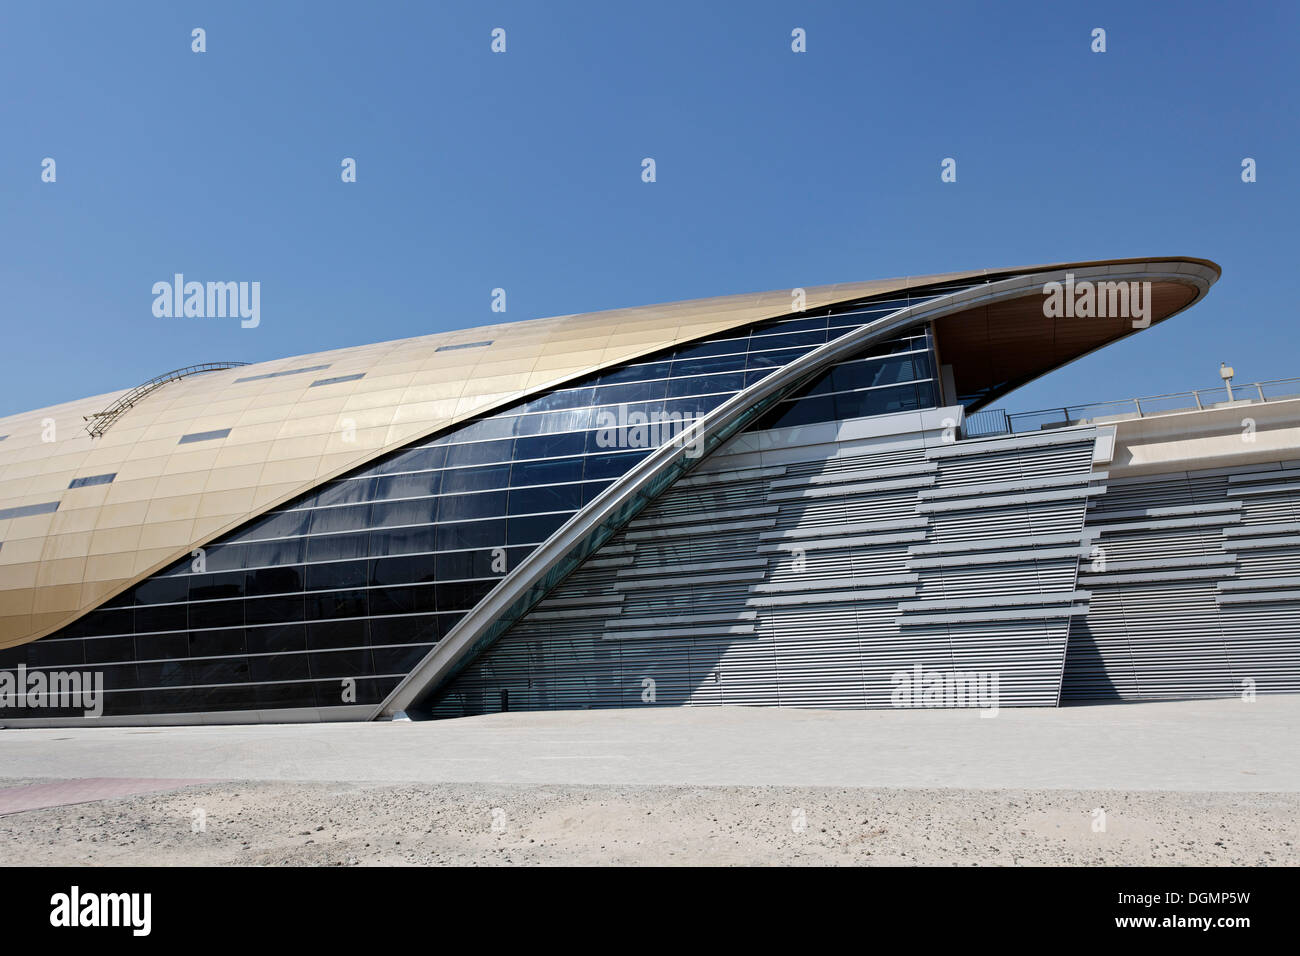 Metro Station, futuristic architecture, Dubai, United Arab Emirates, Middle East, Asia - Stock Image